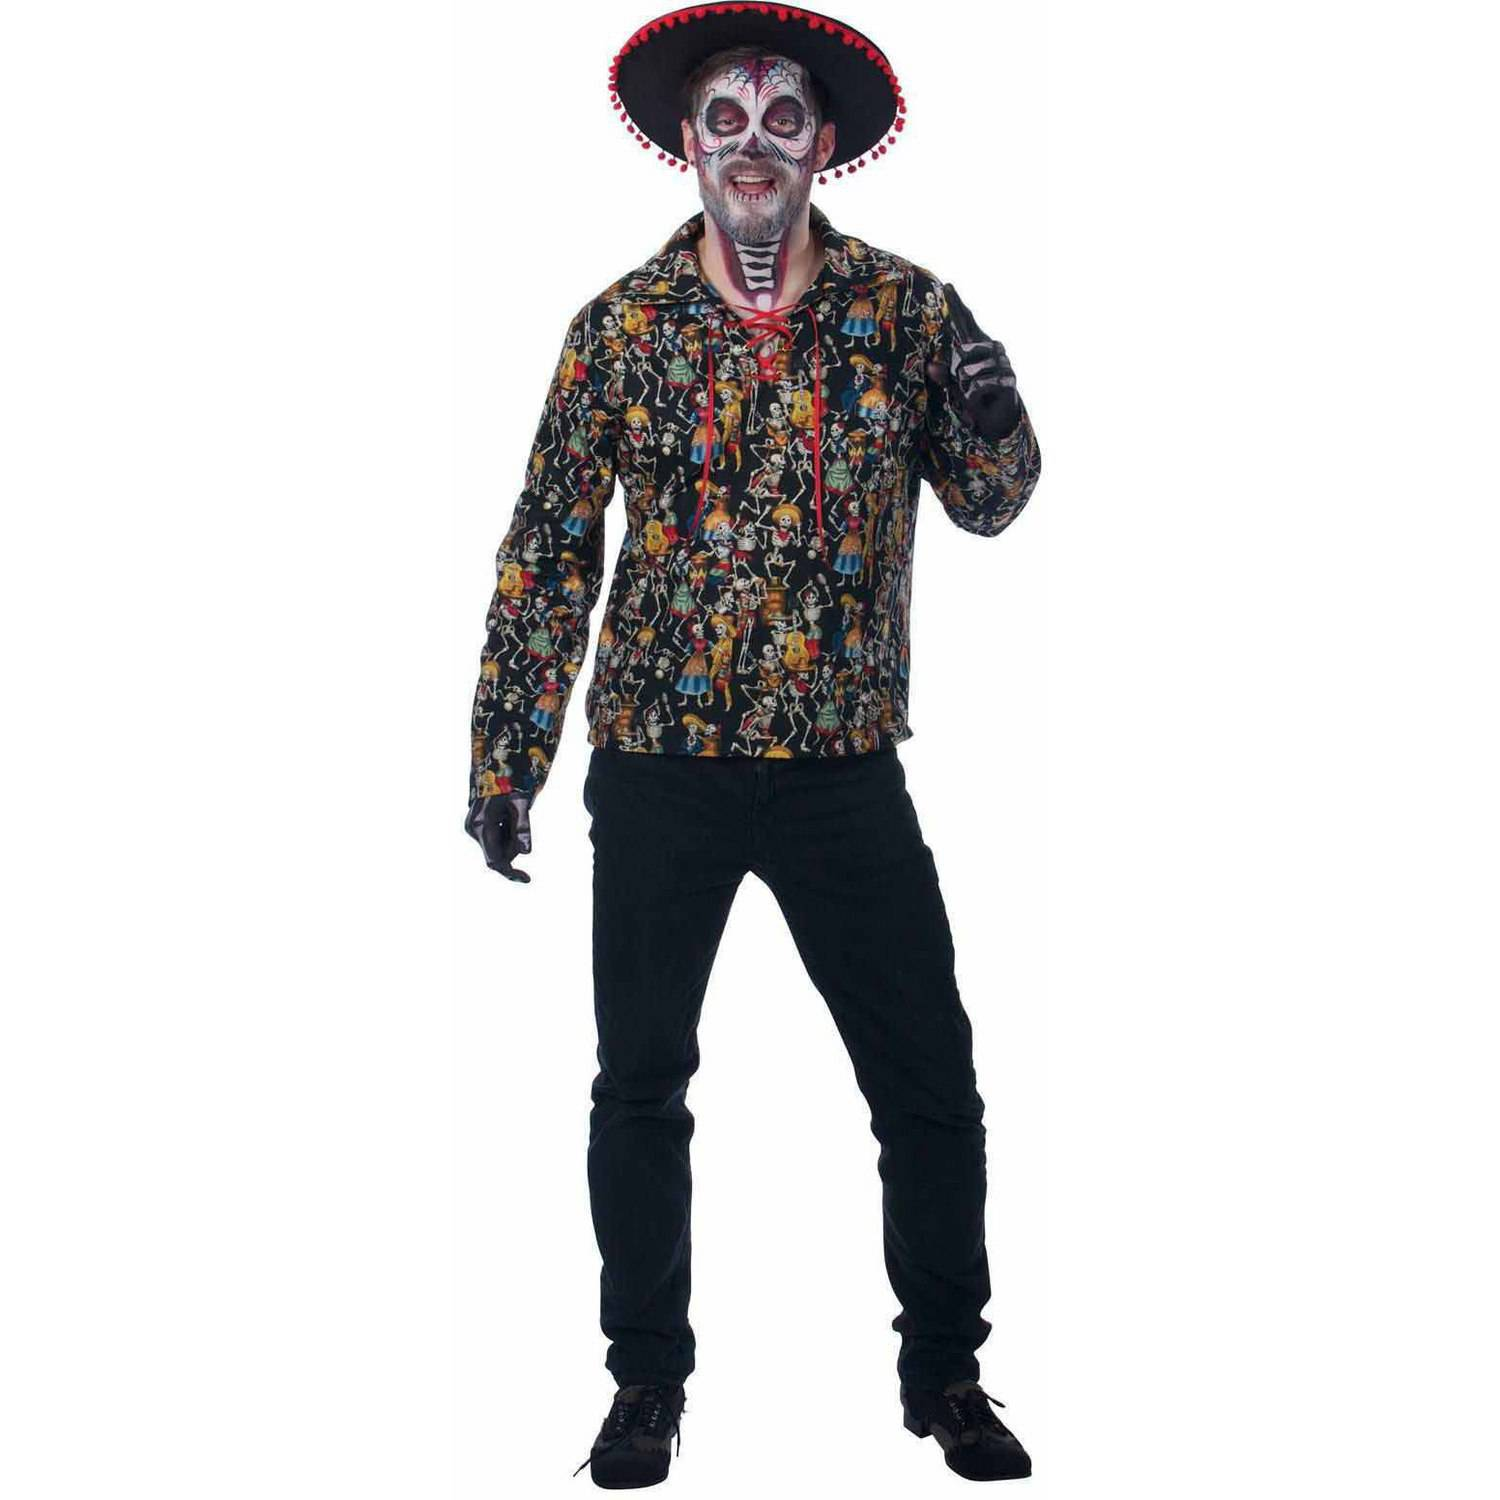 Dead Man's Party Men's Adult Halloween Costume